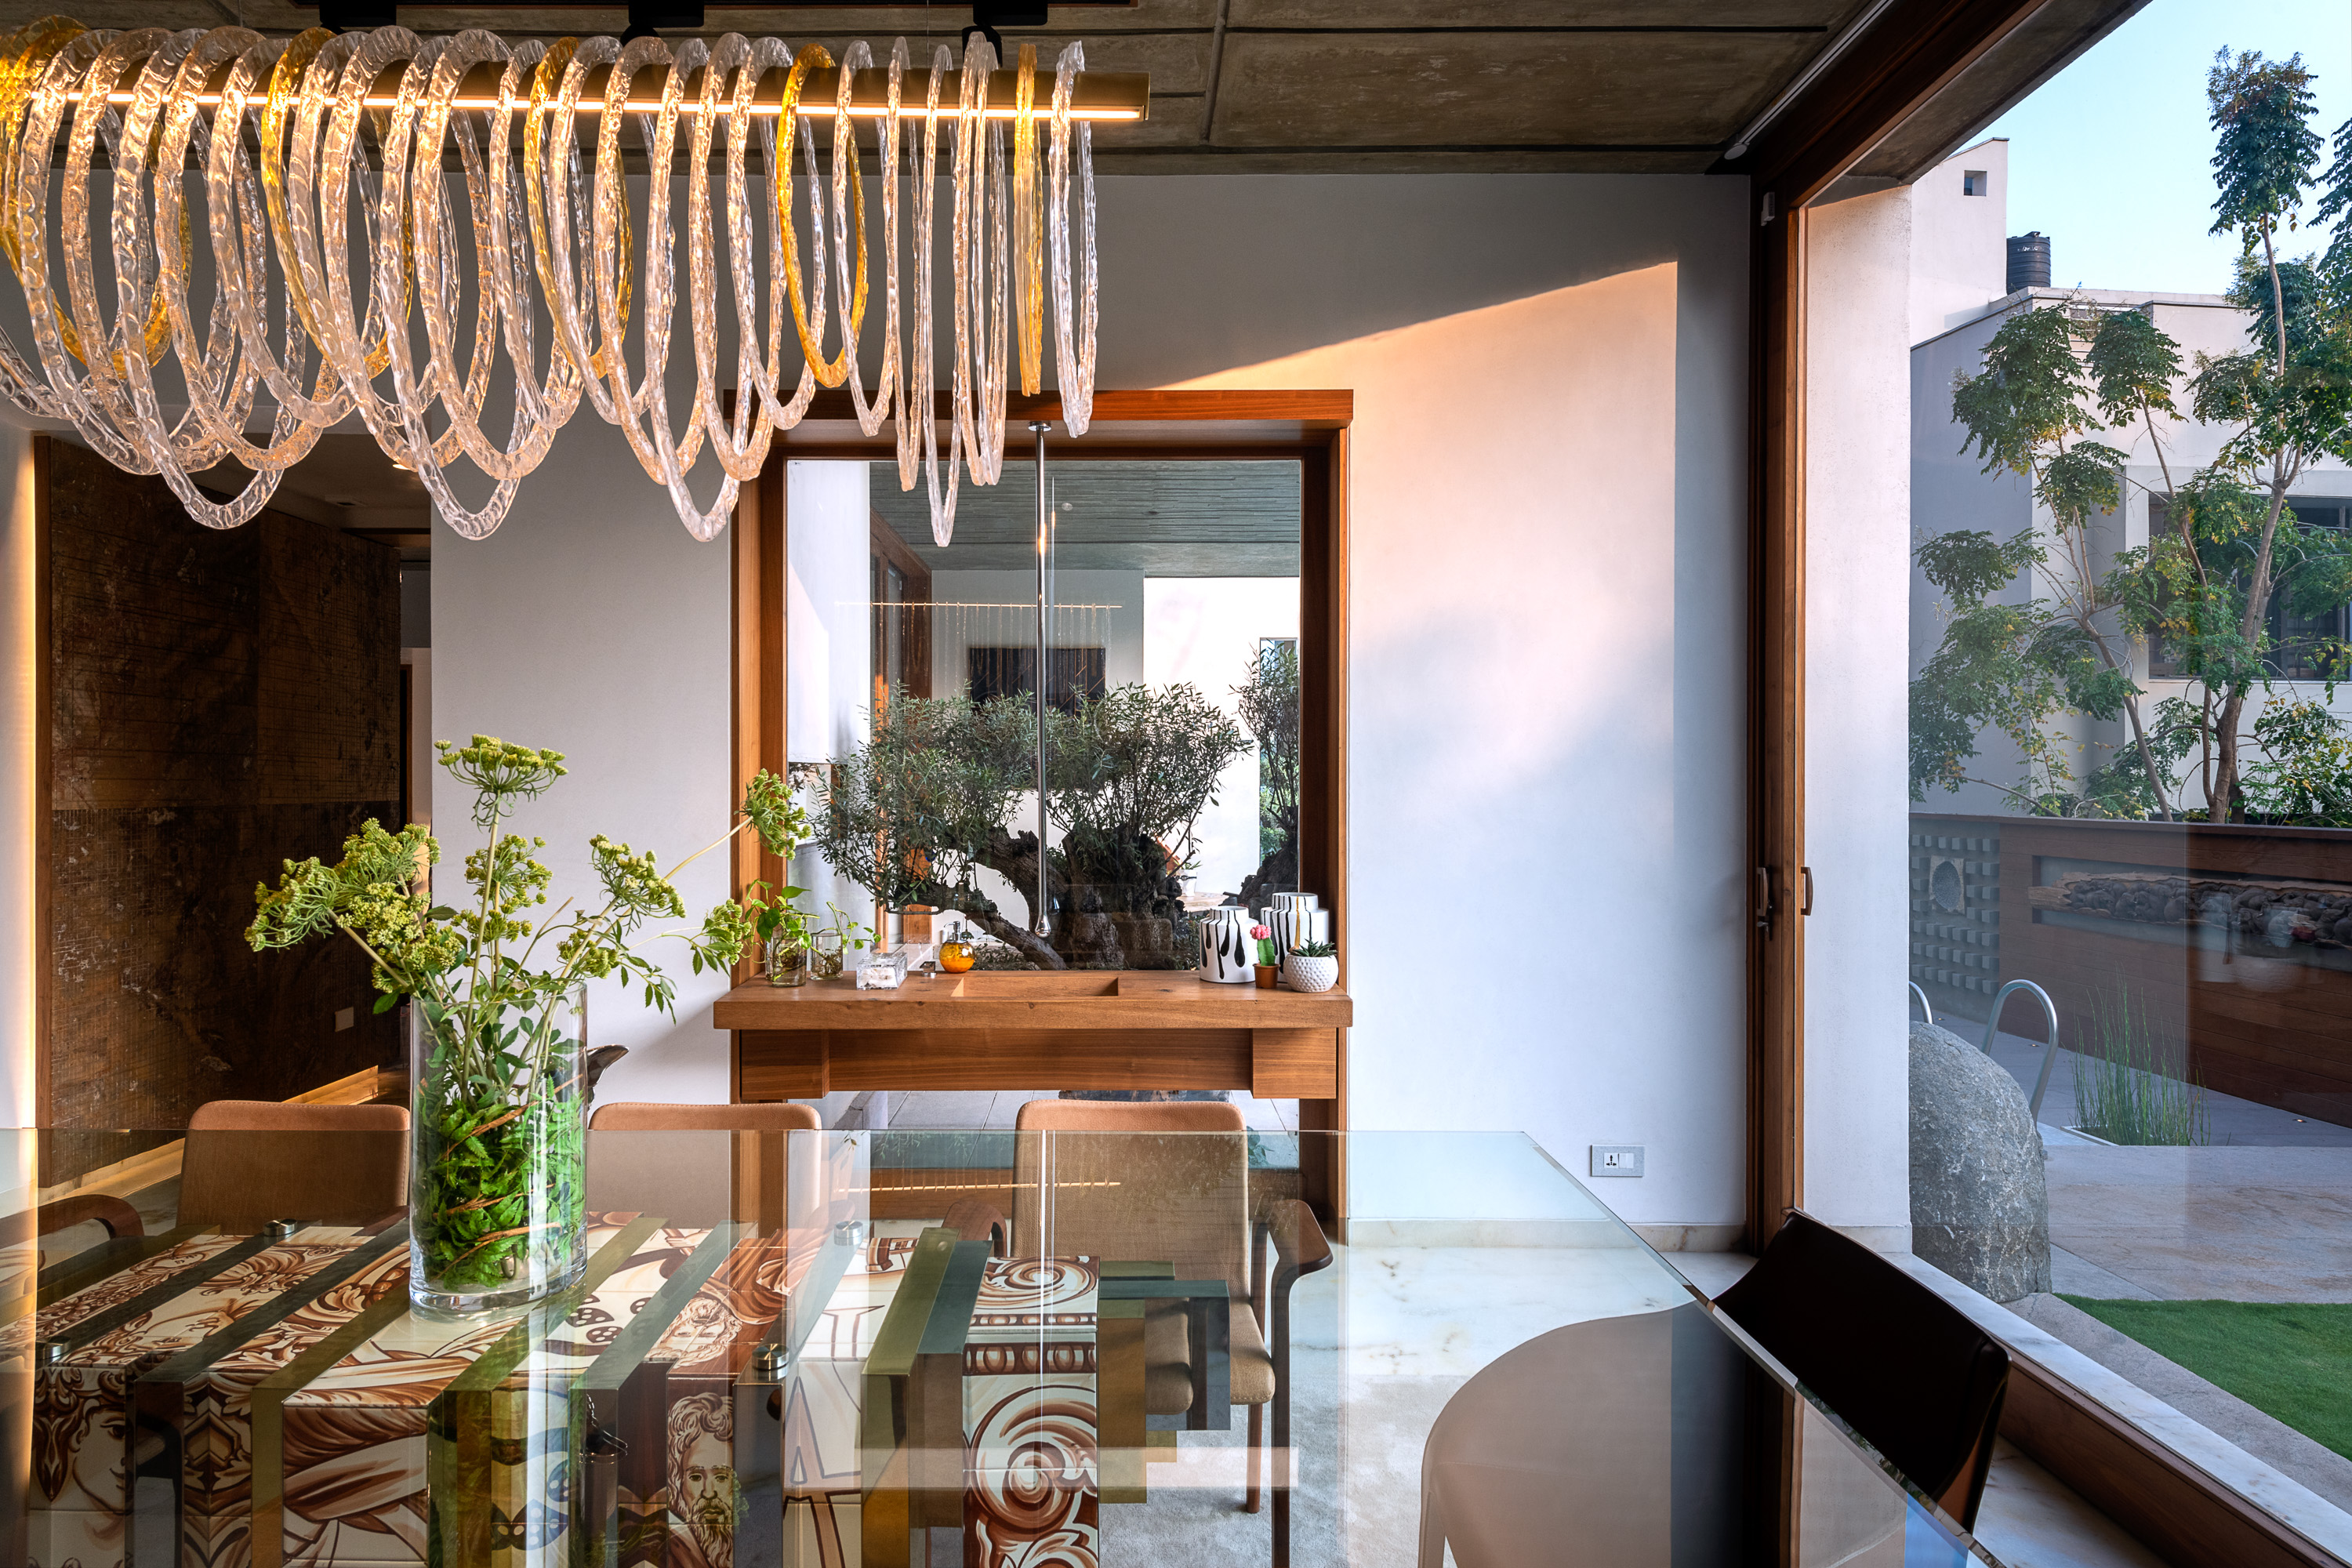 Sustainability Meets Luxury In This Private Residence by NA Architects (3) na architects NA Architects Design A Private Residence Where Copper Hues Reign Sustainability Meets Luxury In This Private Residence by NA Architects 3